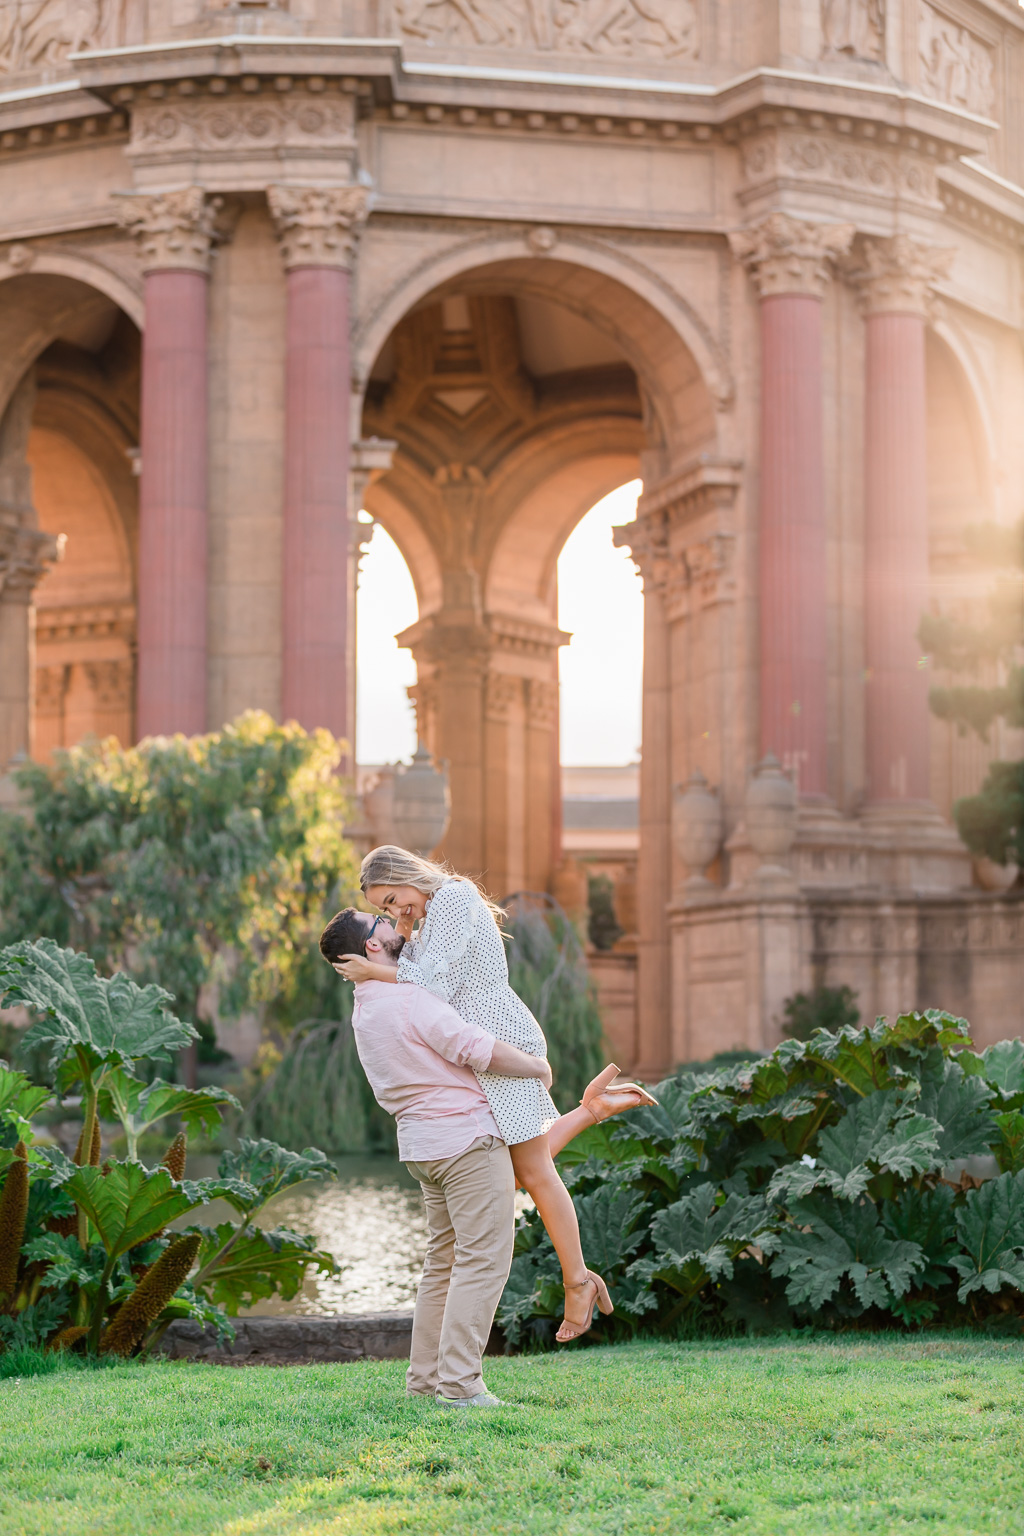 beautiful engagement photo at Palace of Fine Arts under the golden sunlight